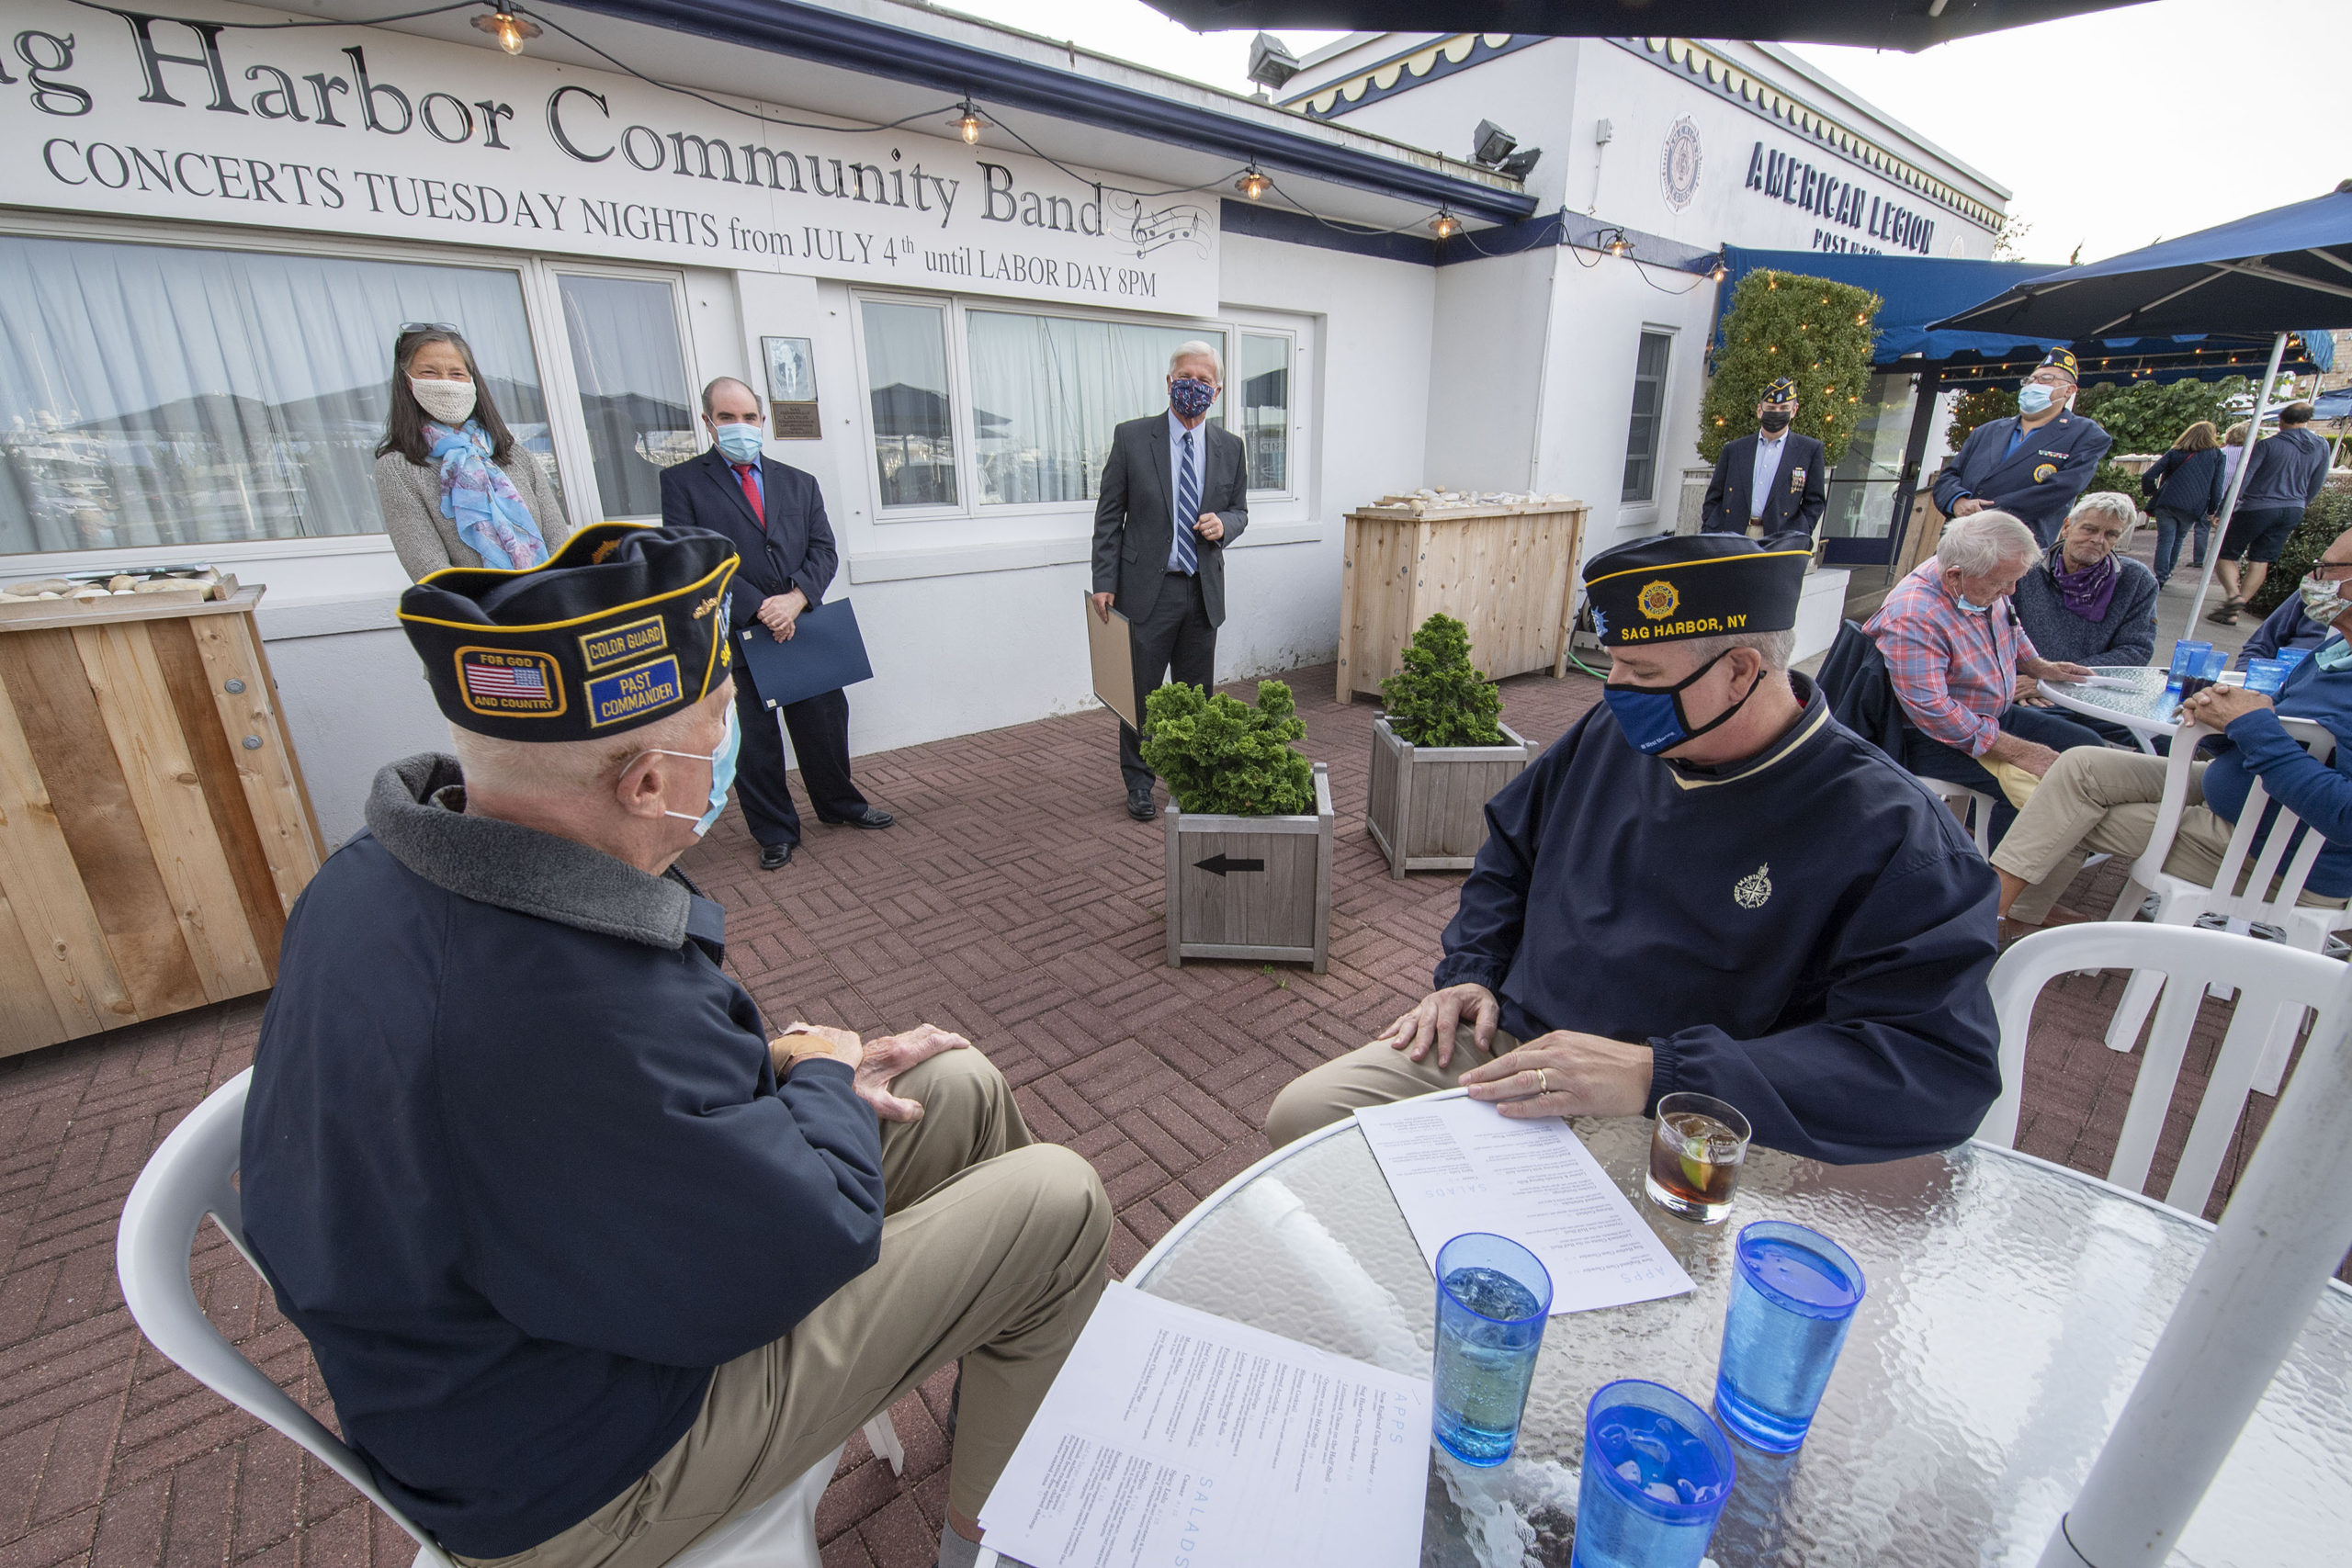 Robert Browngardt, at left, is honored by New York State Assemblyman Fred Thiele for 50 years of Service to The American Legion during a ceremony on the patio in front of the legion's Chelberg & Battle Post 388 on Tuesday evening.       MICHAEL HELLER